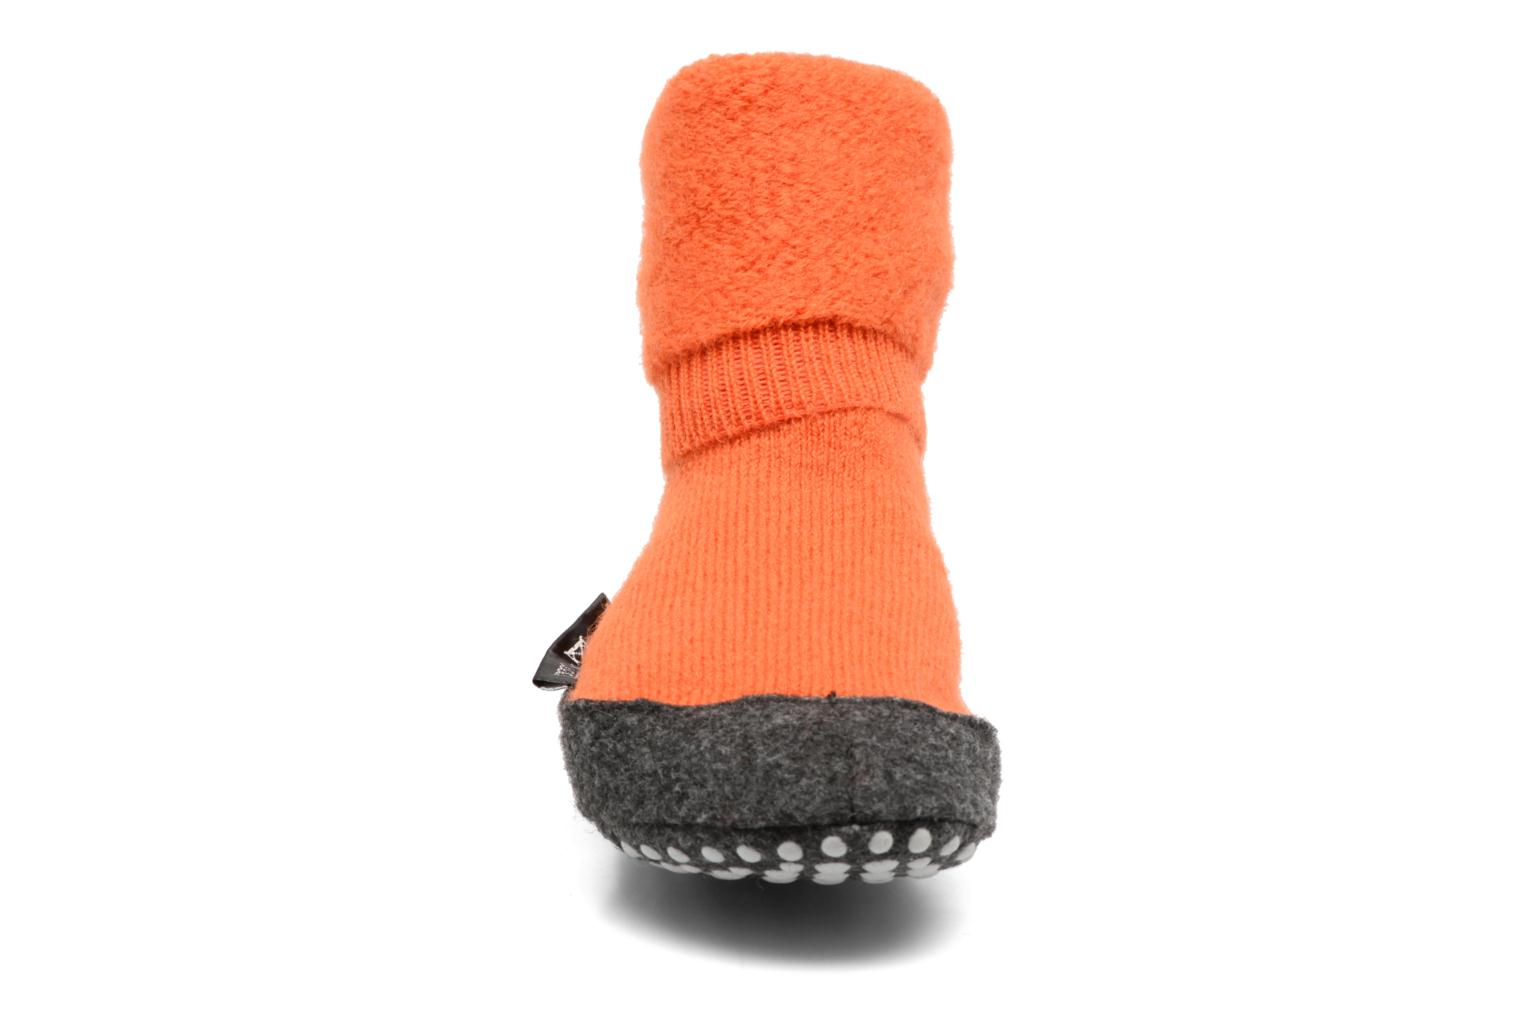 Chaussons-chaussettes Cosyshoes 8094 TANGERINE